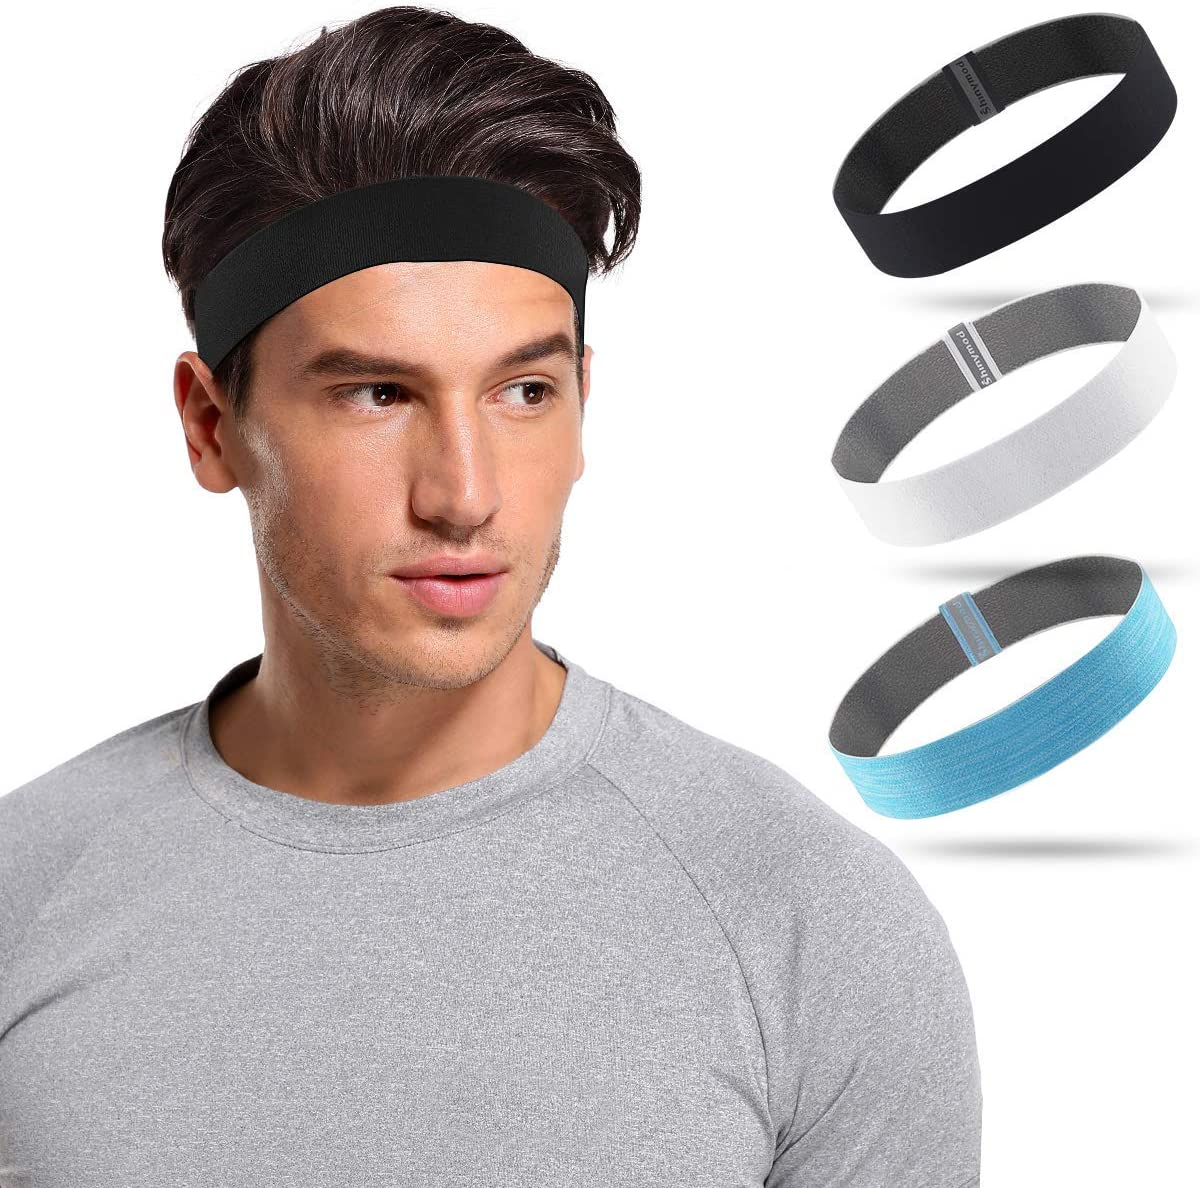 SHINYMOD Sports Headband for Men and Women,Non-Slip /& Sweat Wicking Athletic Sweatband for Running,Yoga,Crossfit,Working Out /& Basketball-Performance Stretch